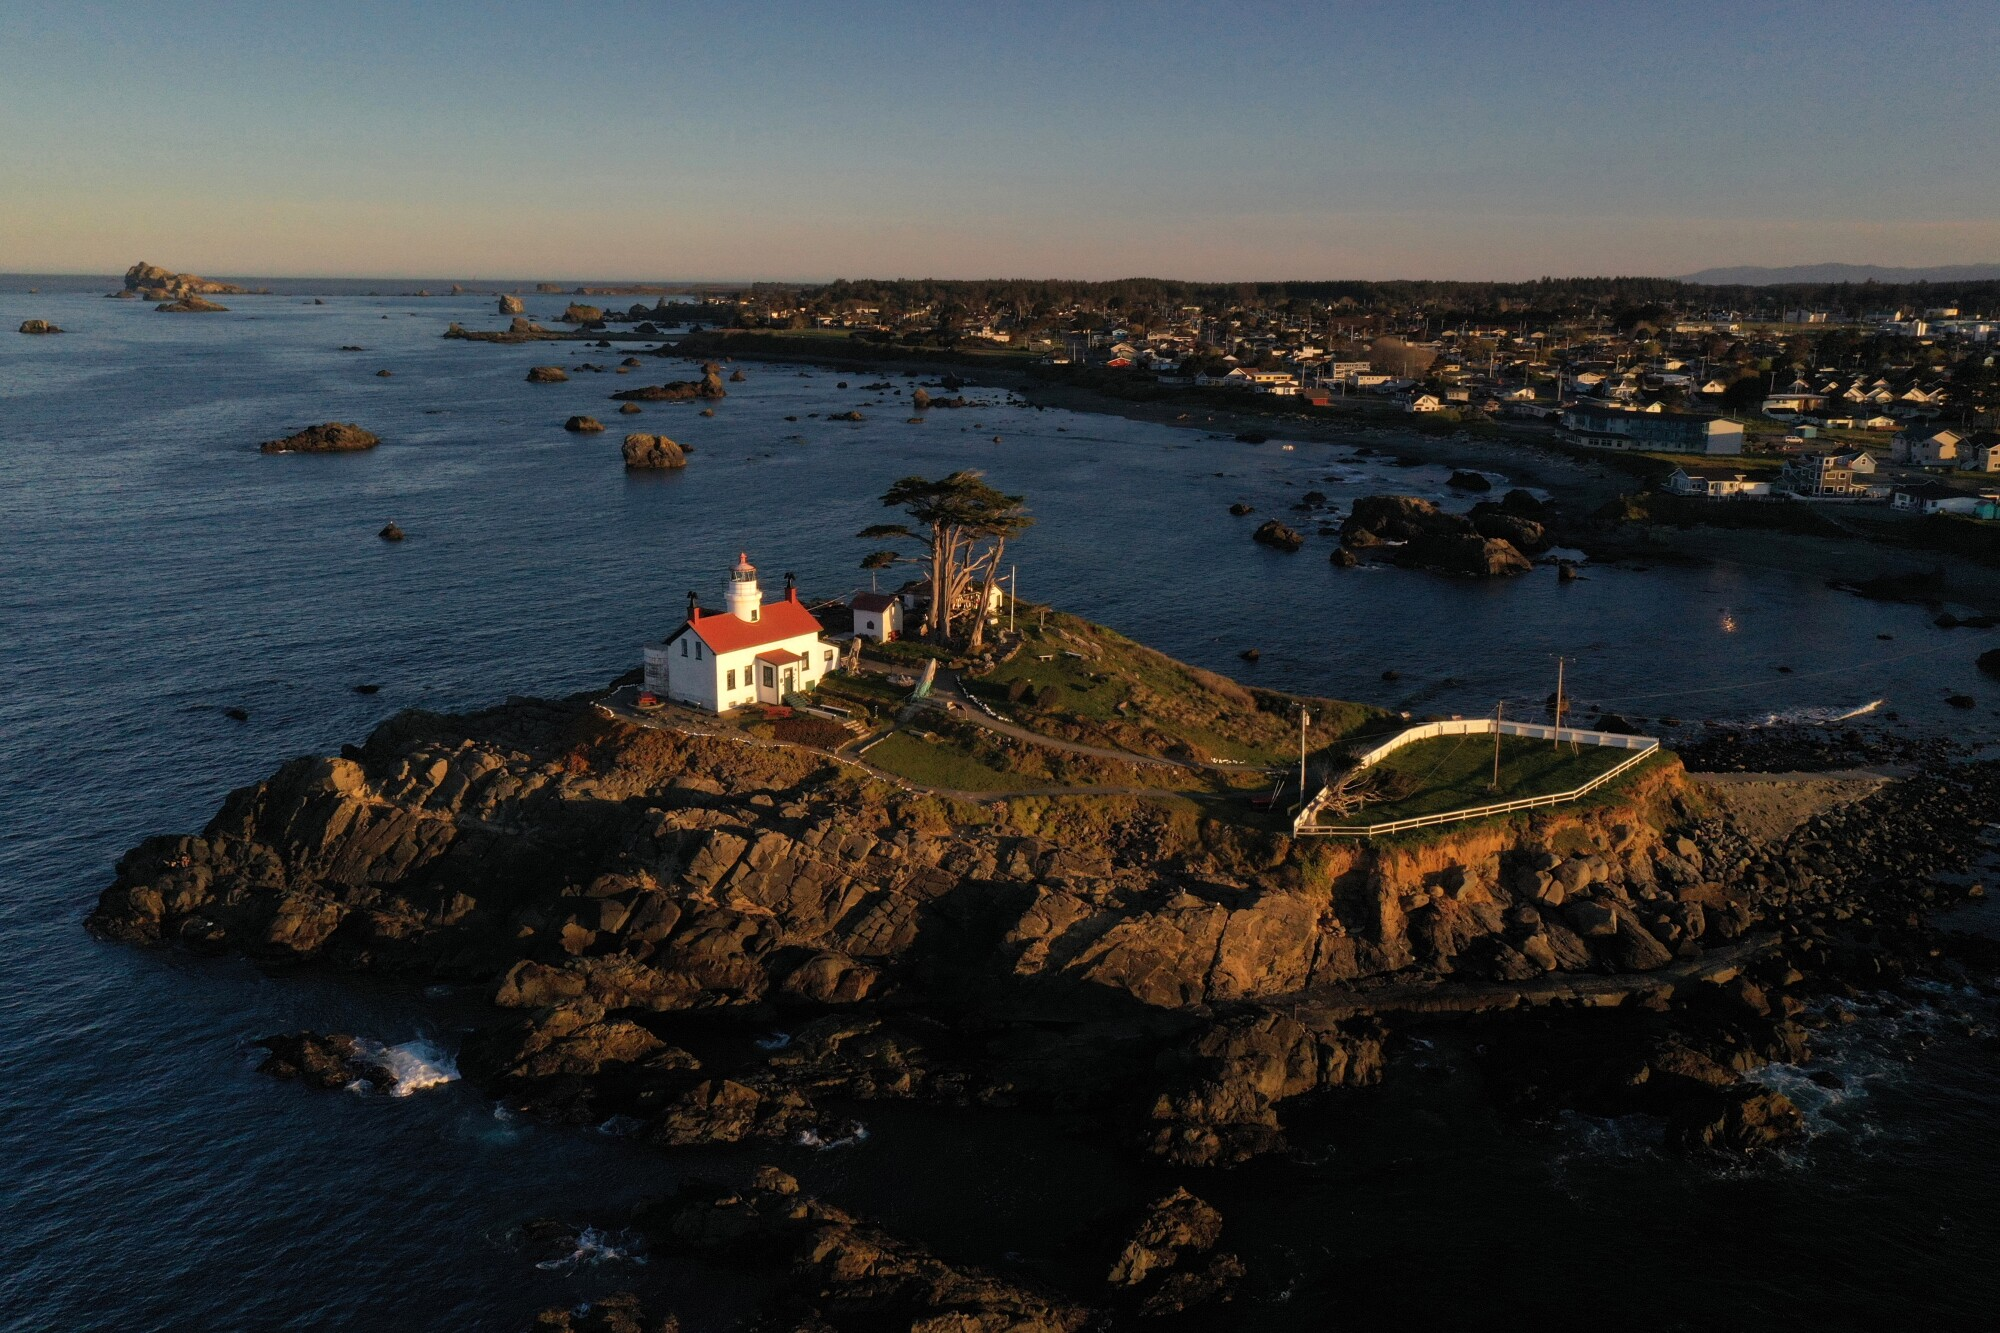 Battery Point Lighthouse in Crescent City